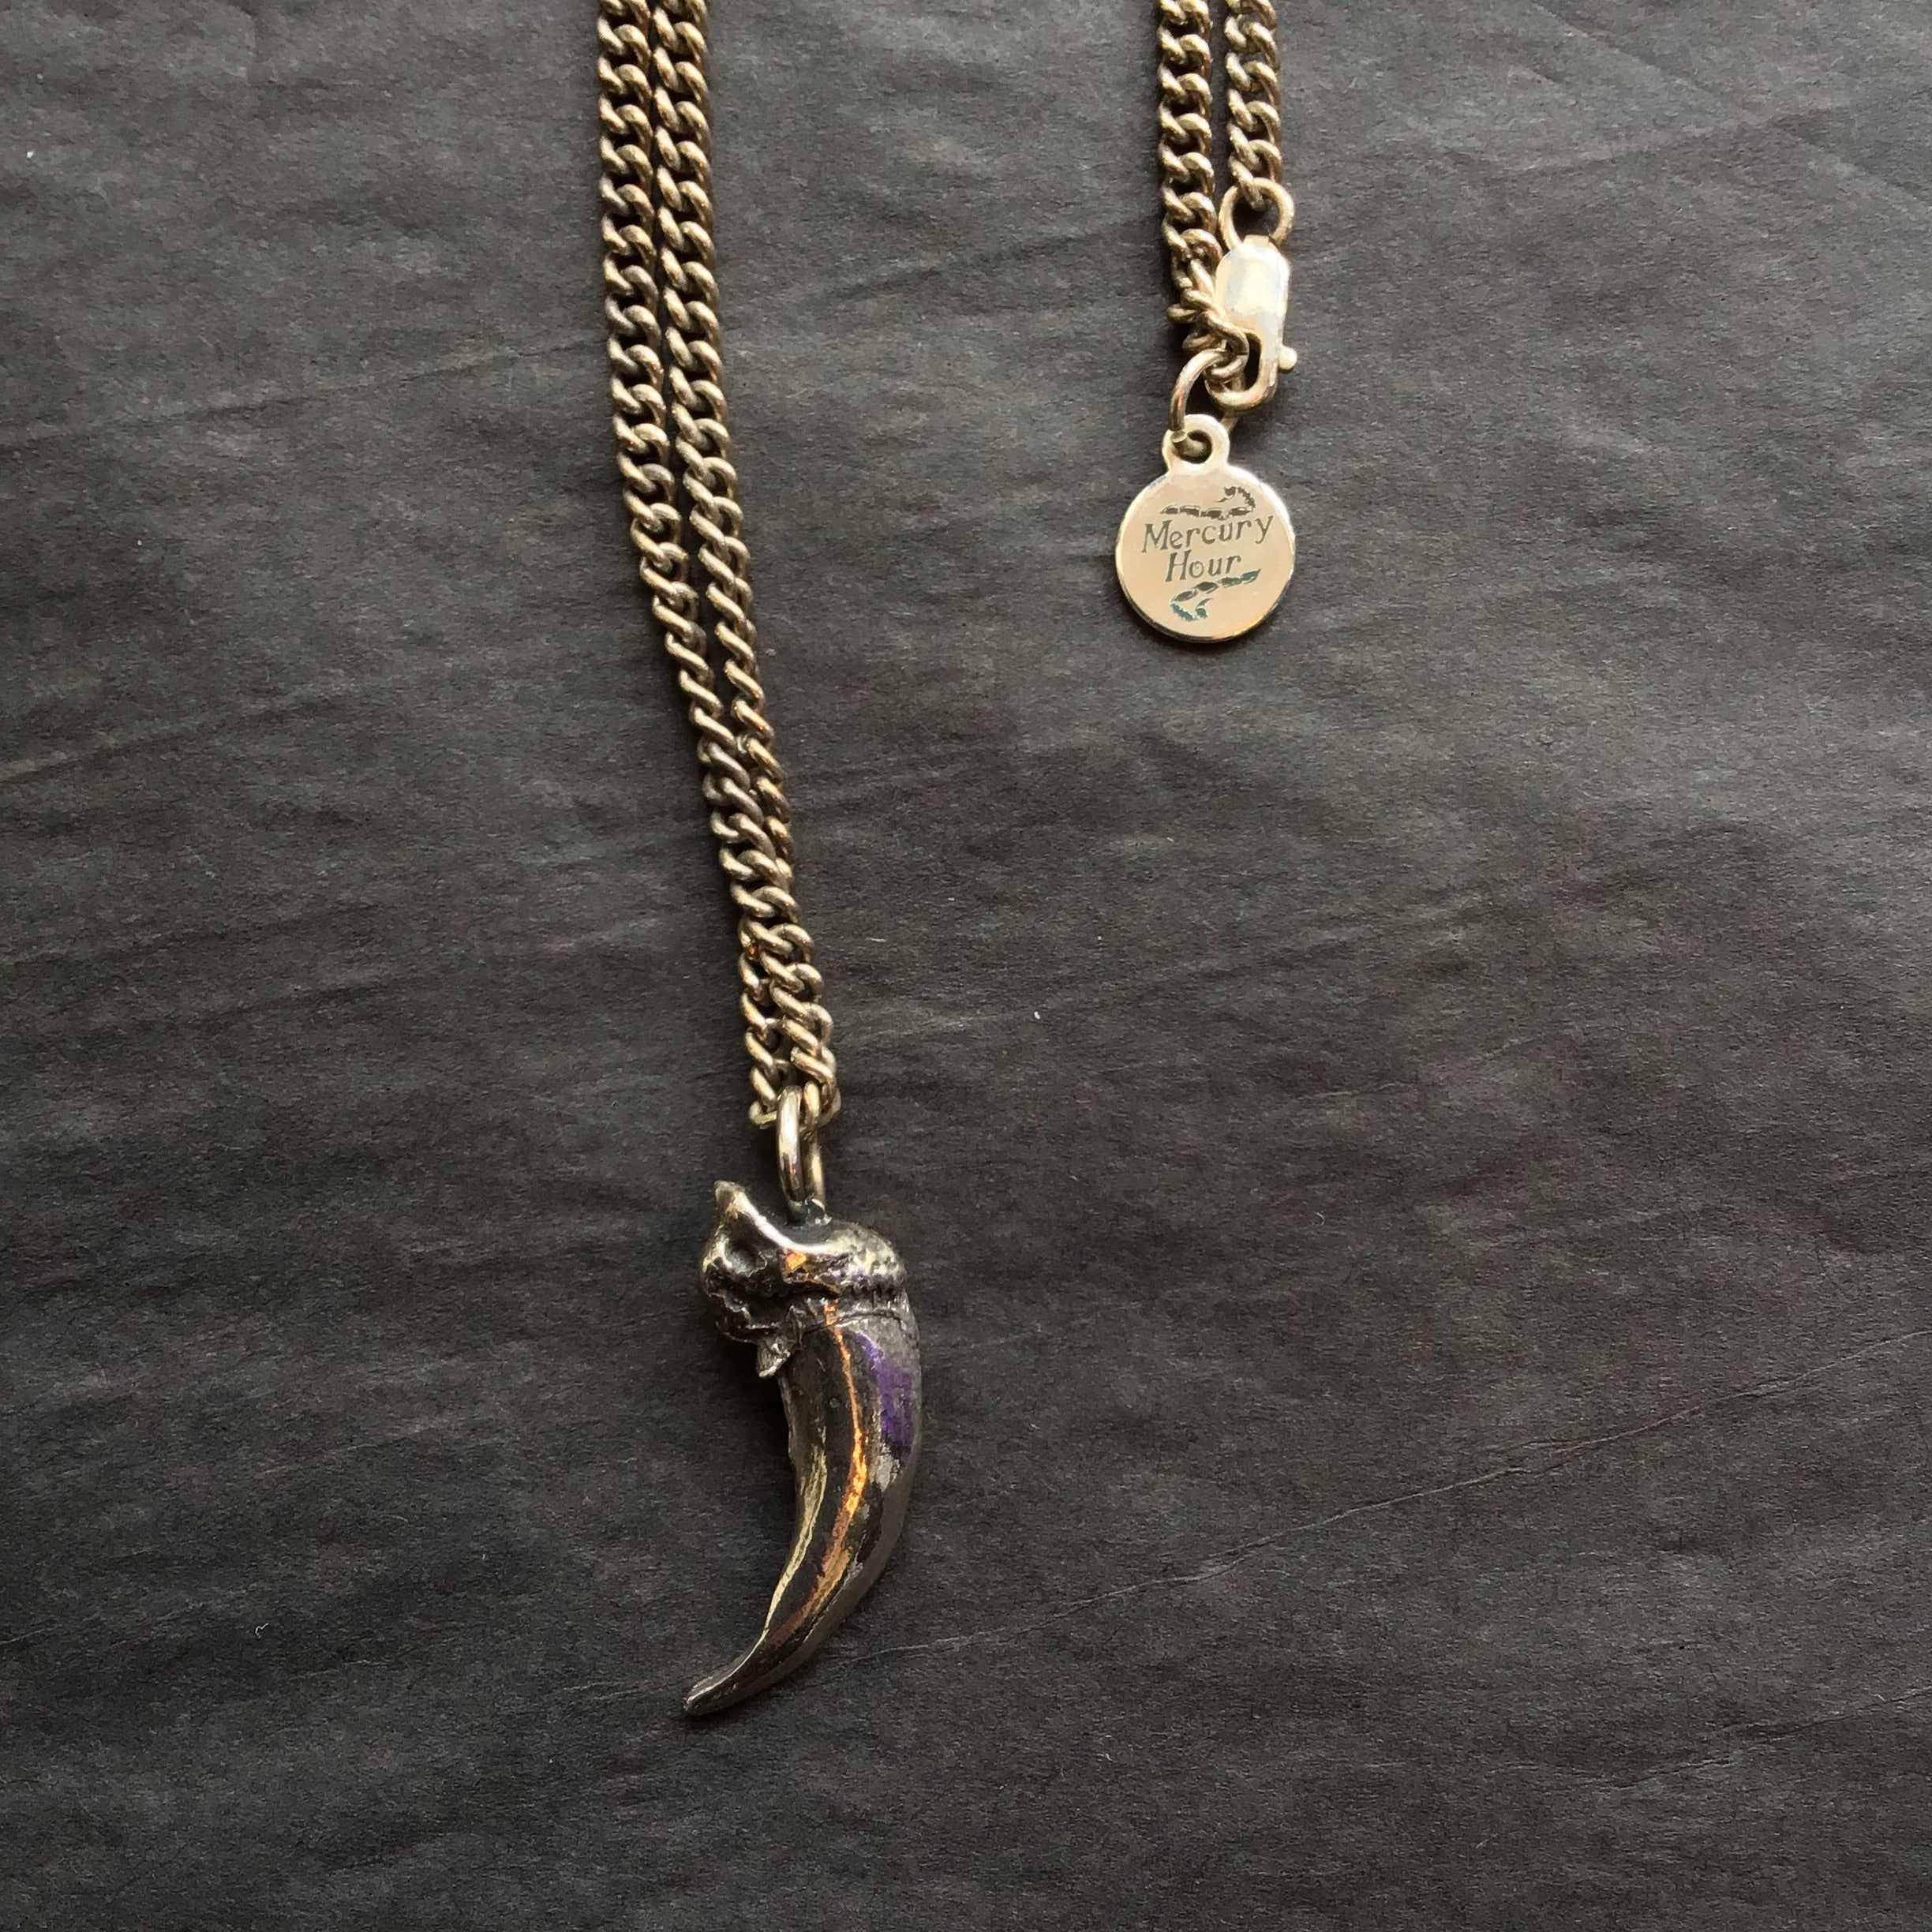 Mercury Hour Wolf Claw Necklace